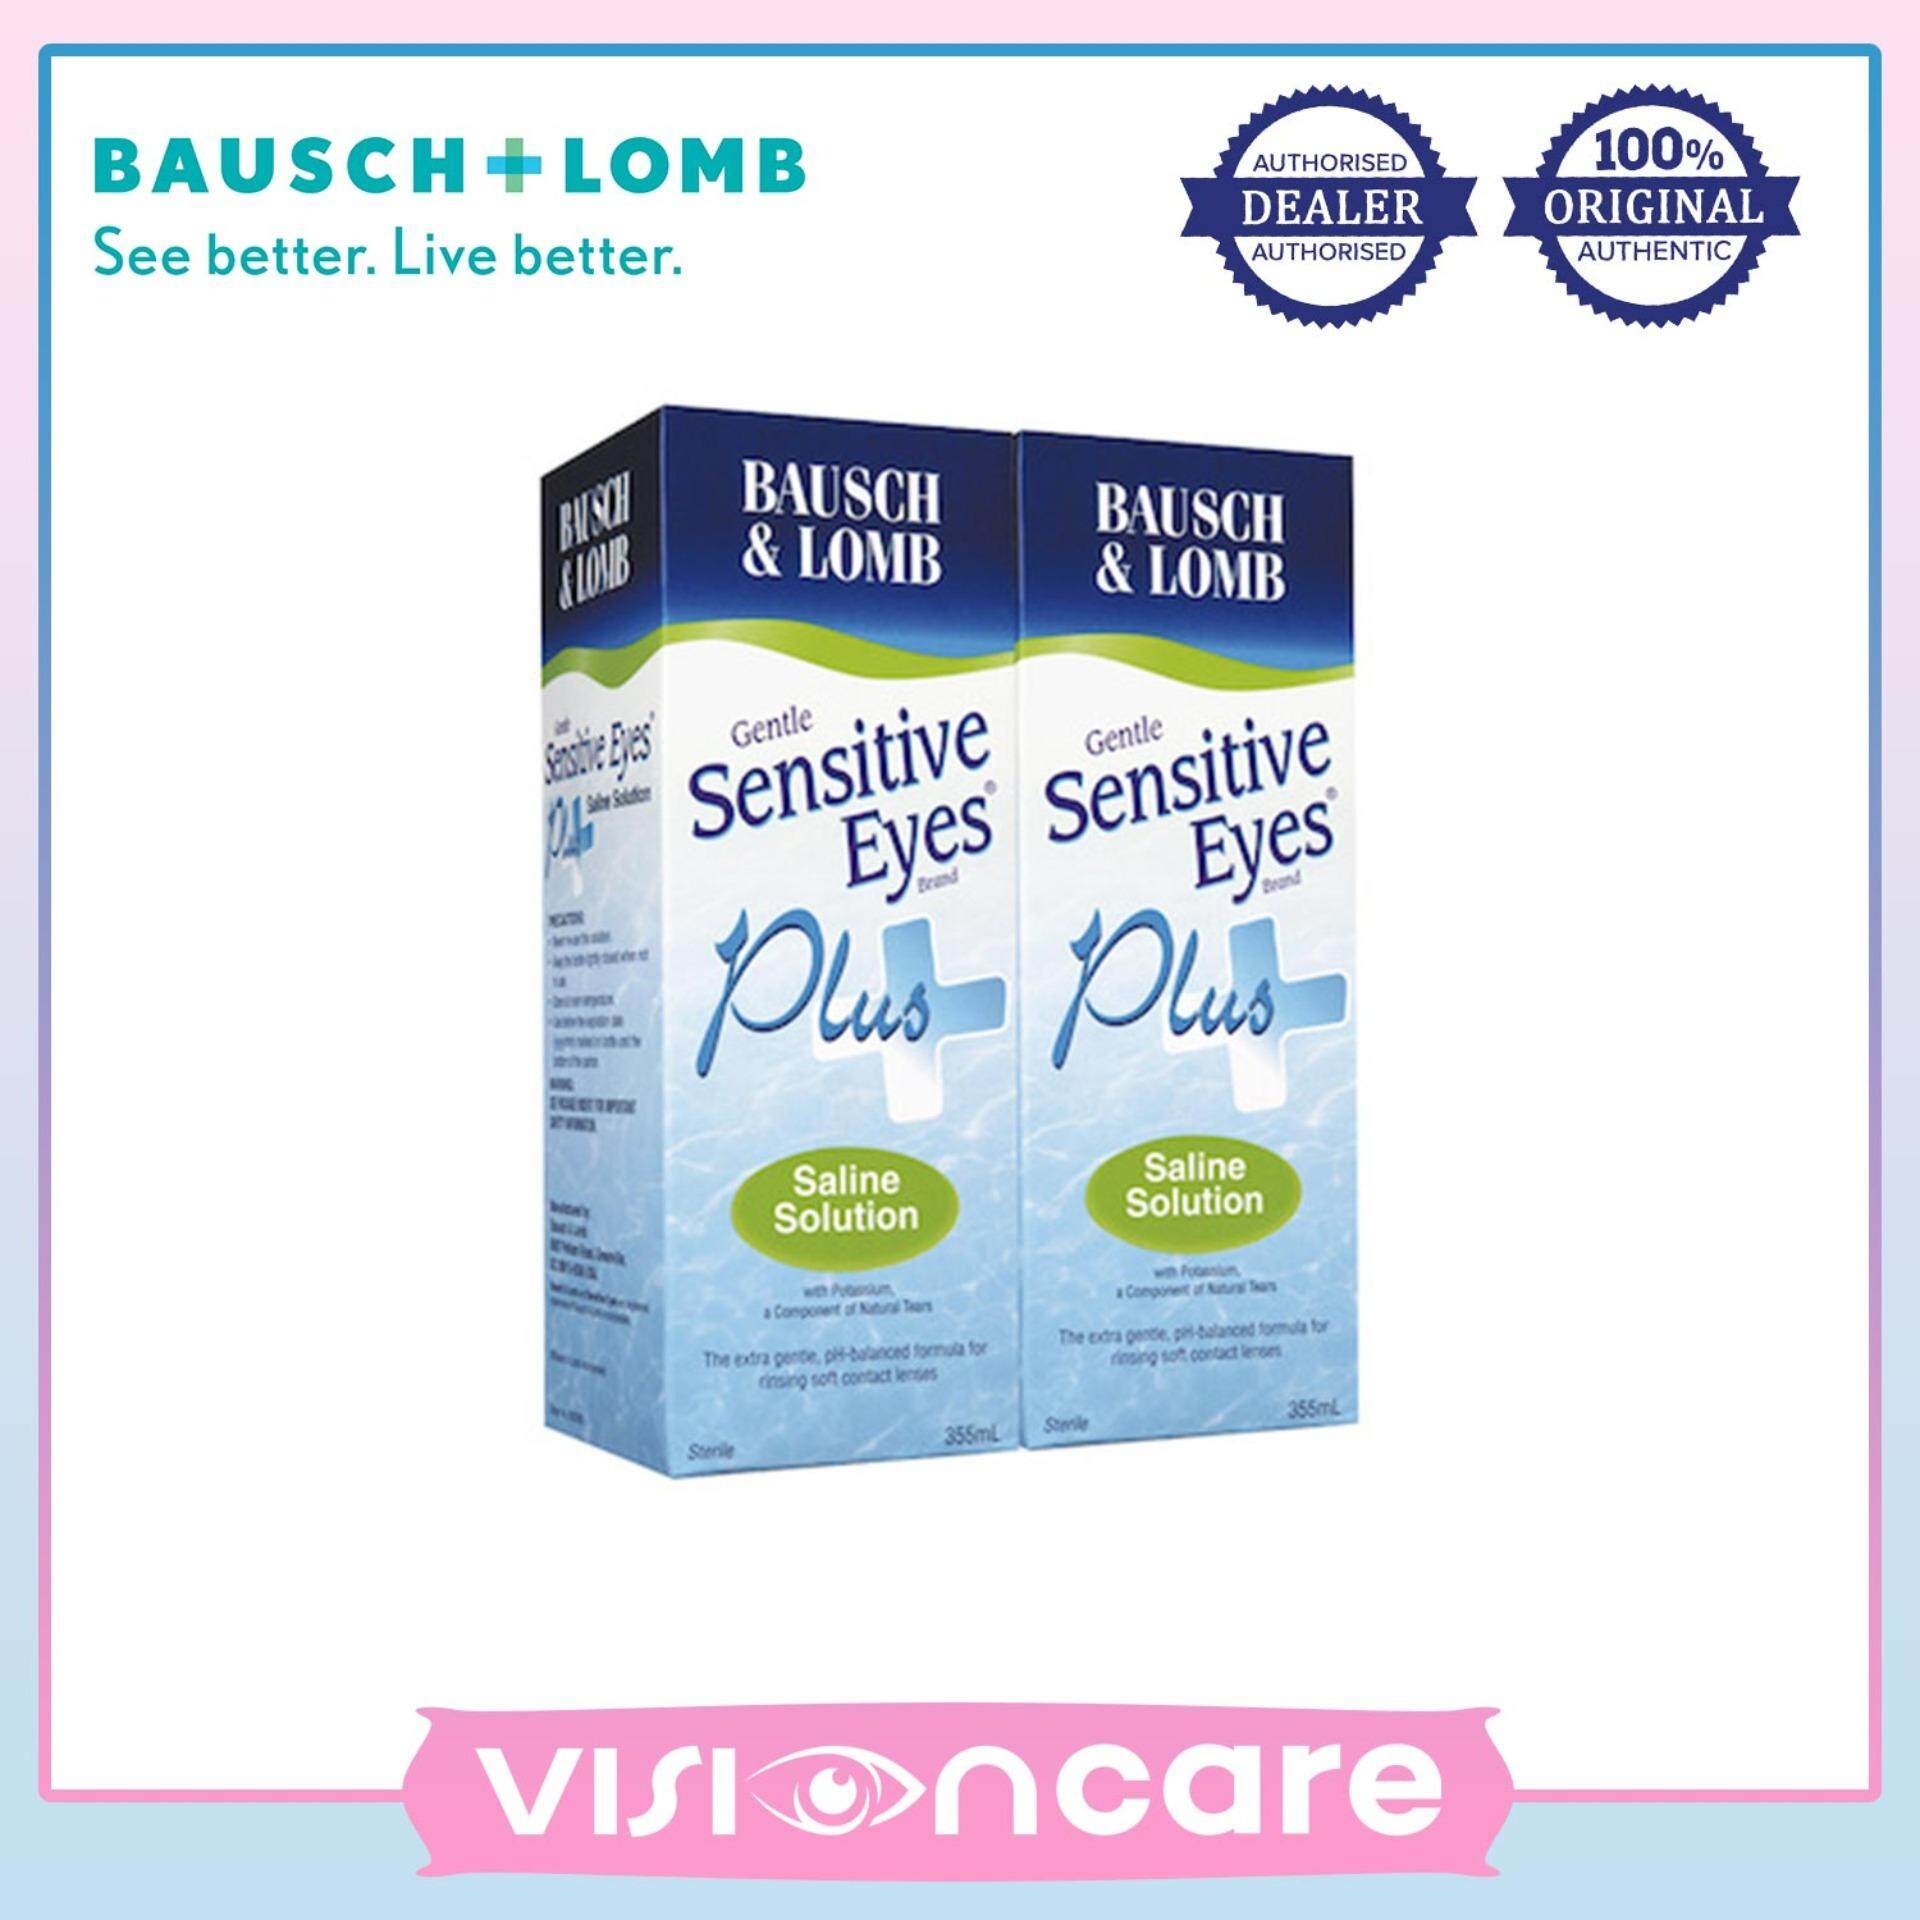 Bausch & Lomb 355ml Twin Pack Sensitive Eyes Plus Saline Solution (2 Boxes)